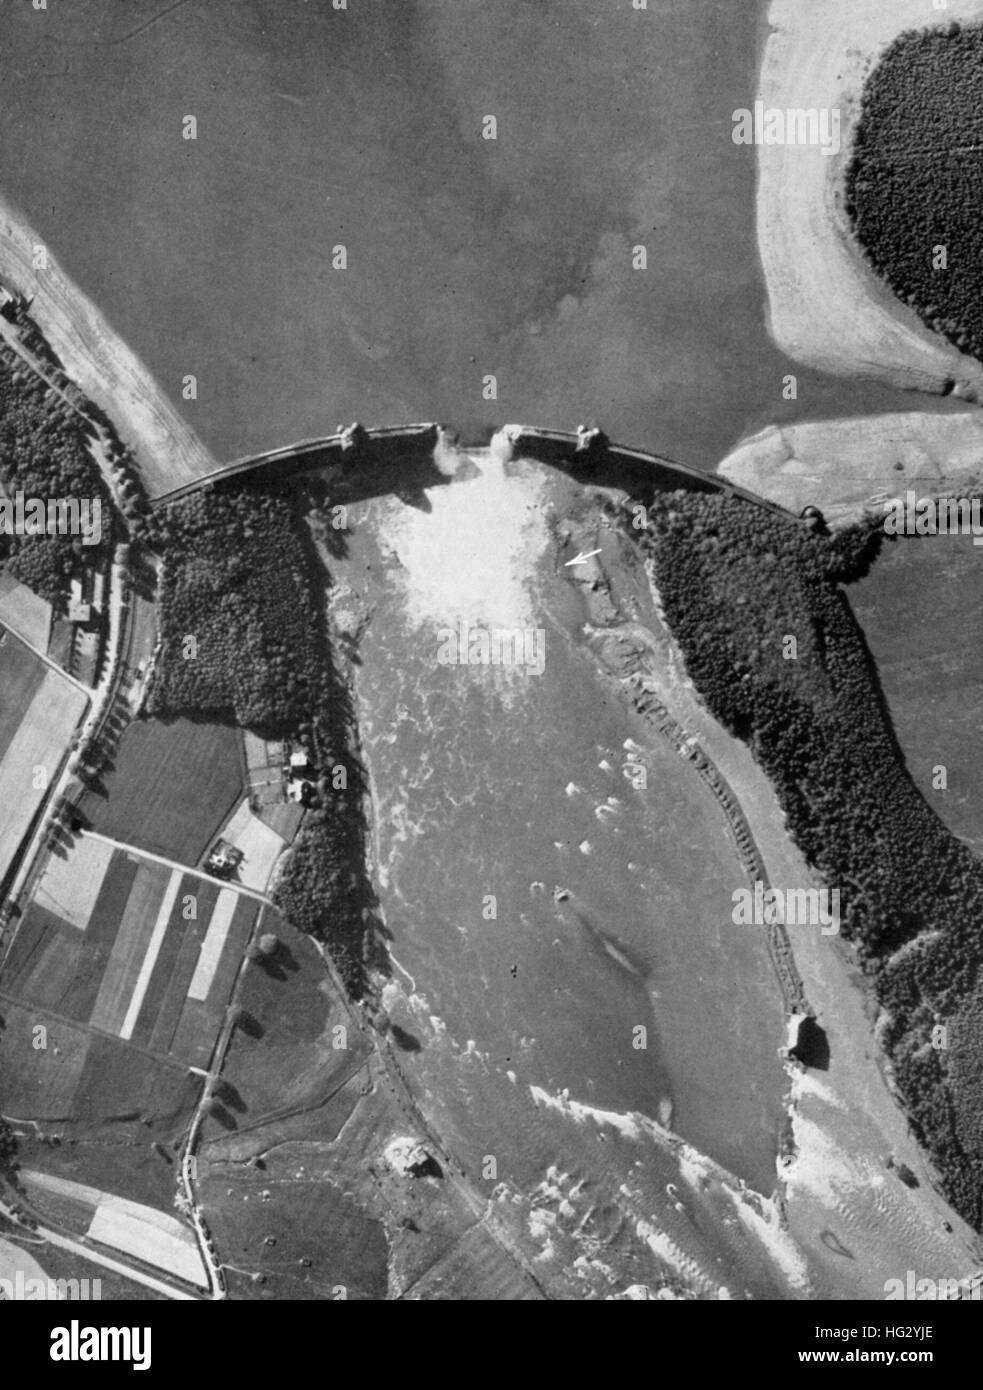 DAMS RAIDS - OPERATION CHASTISE 16/17 May 1943. Photo reconnaissance of the Mohne Dam on 17 May from a Spitfire - Stock Image